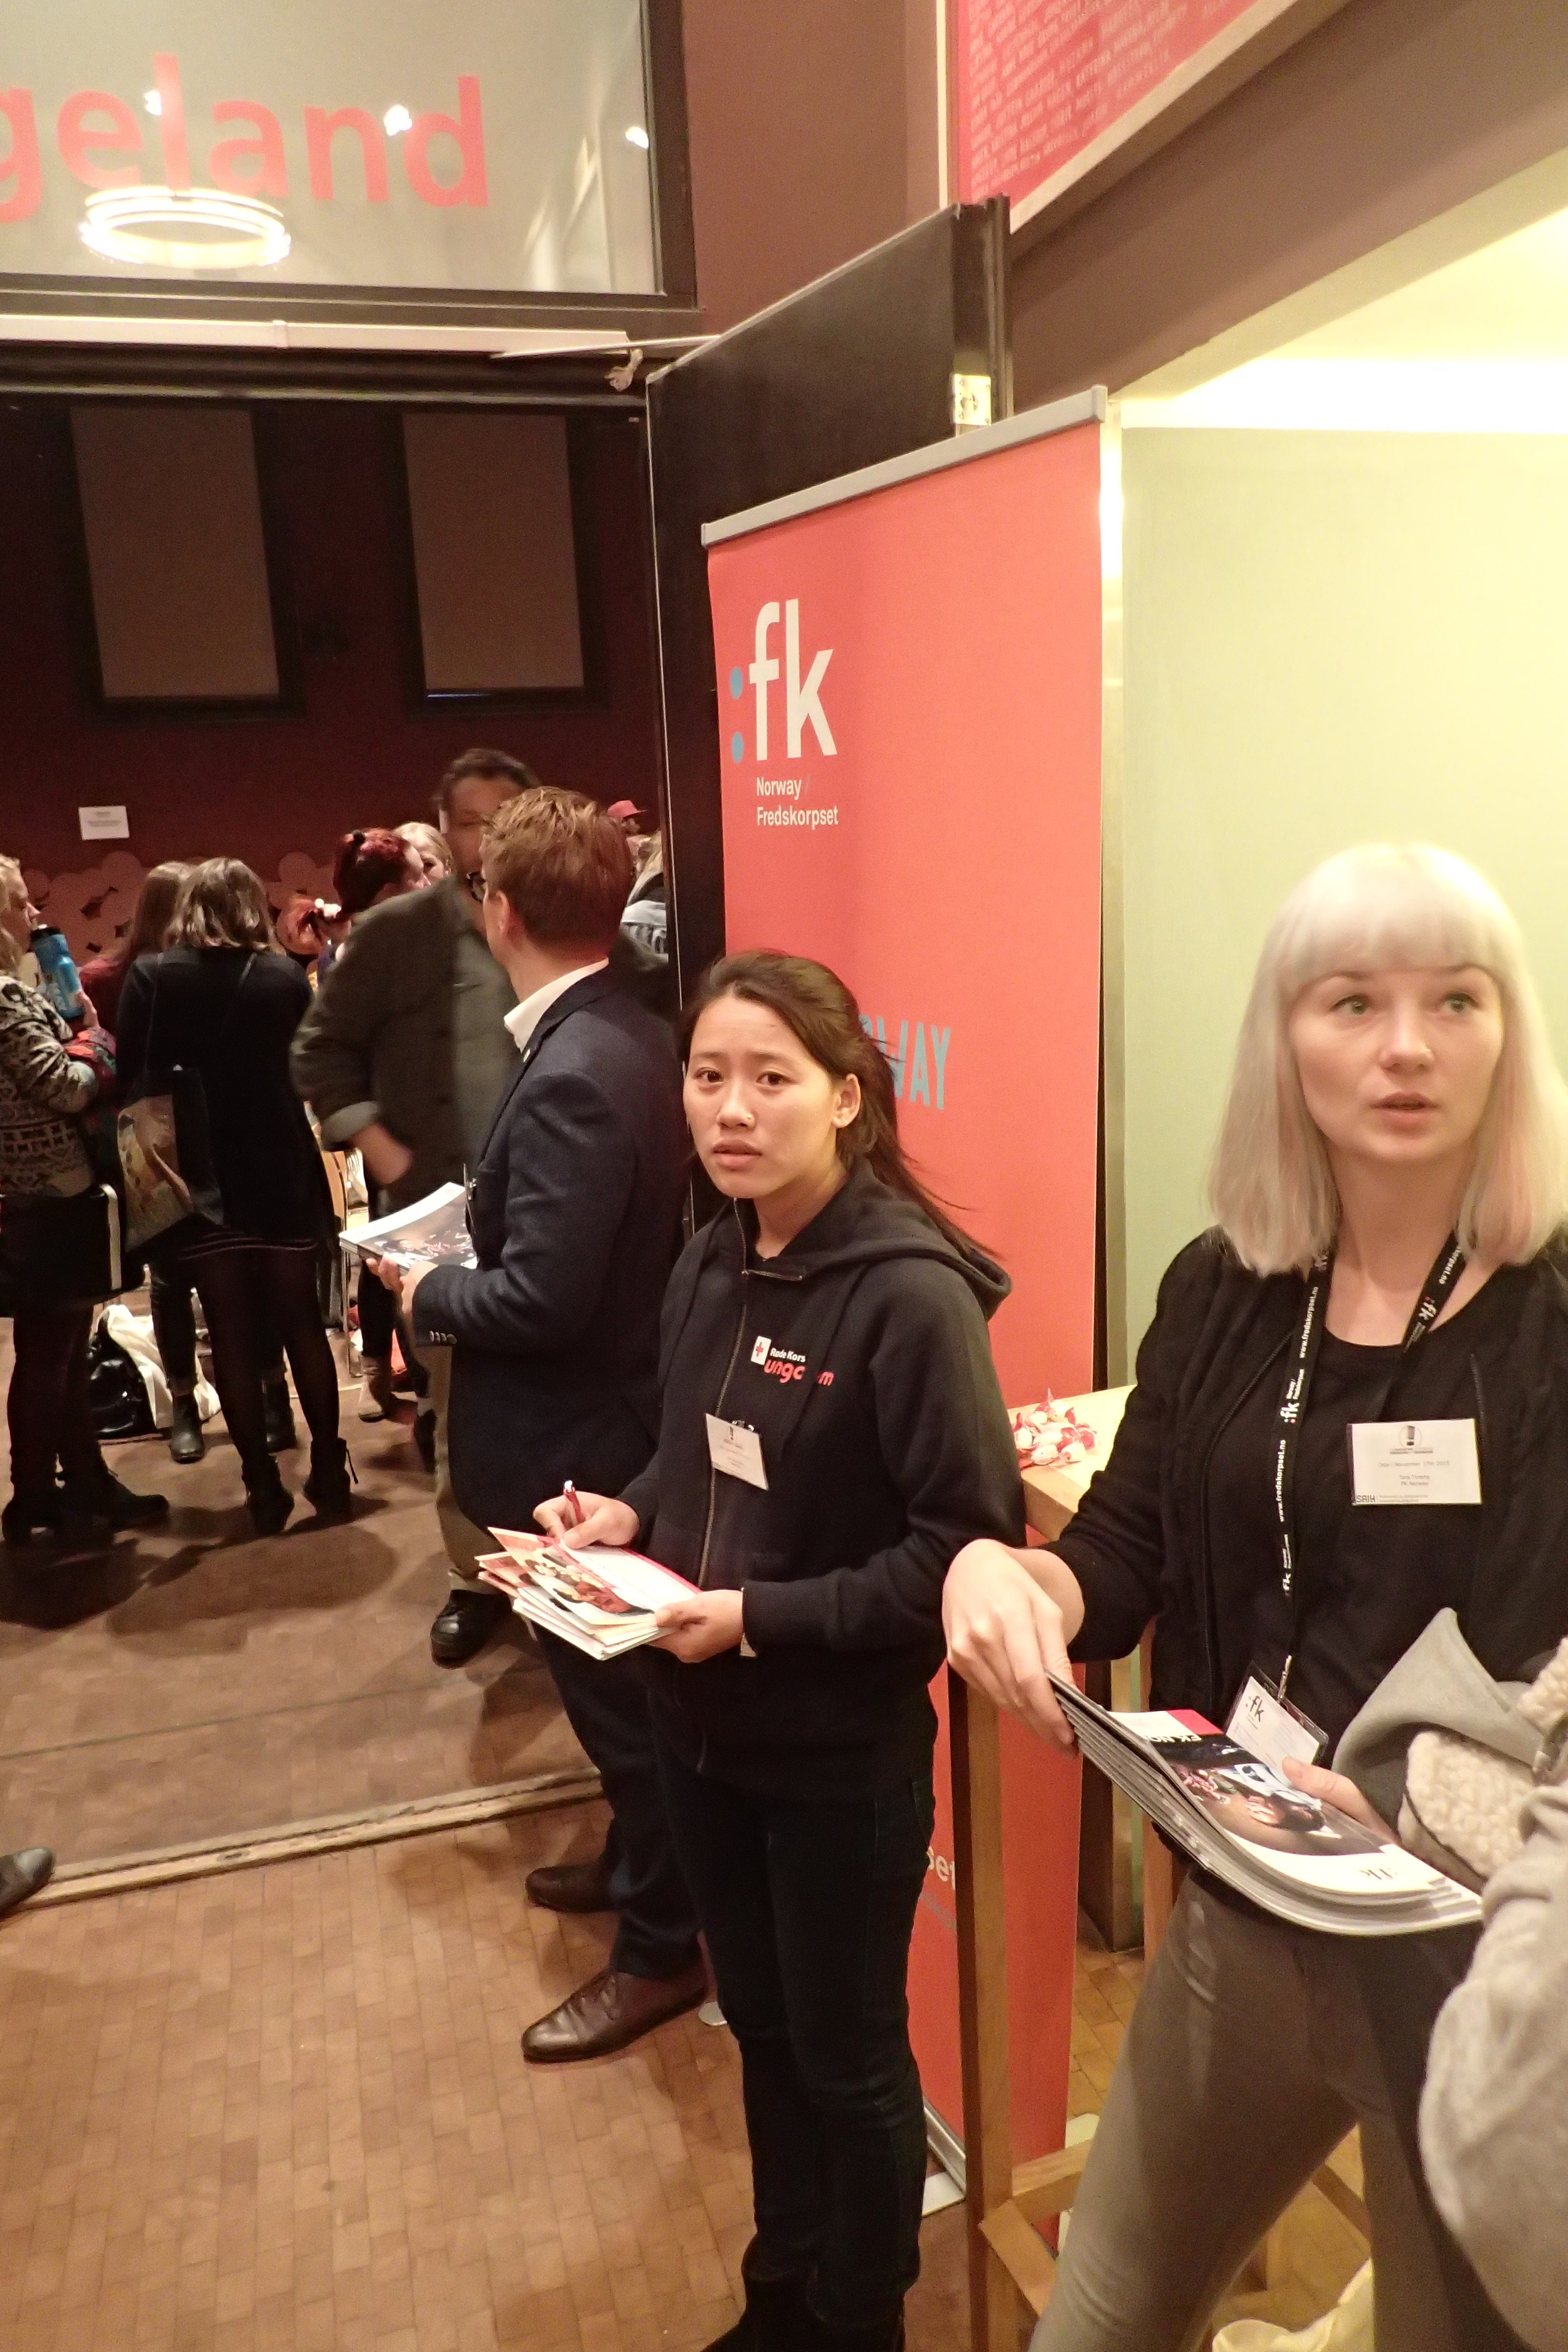 FK Norway and YDEP telling people about our joint effort..